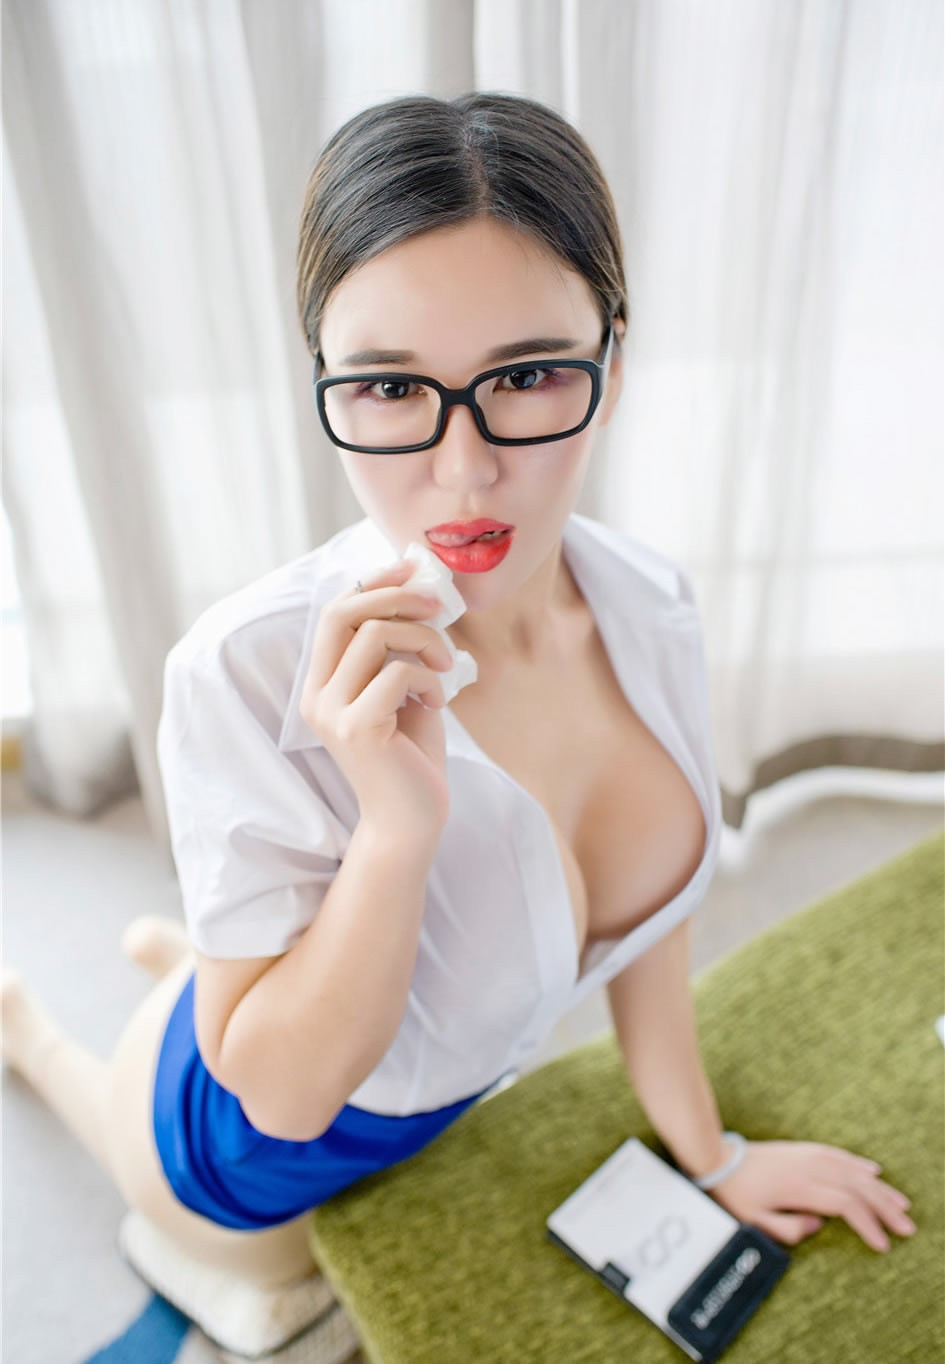 ☀☀kissing me and touch me ☀☀Beautiful Asian Girl ☀☀973-975-4006☀Outcall Only💦